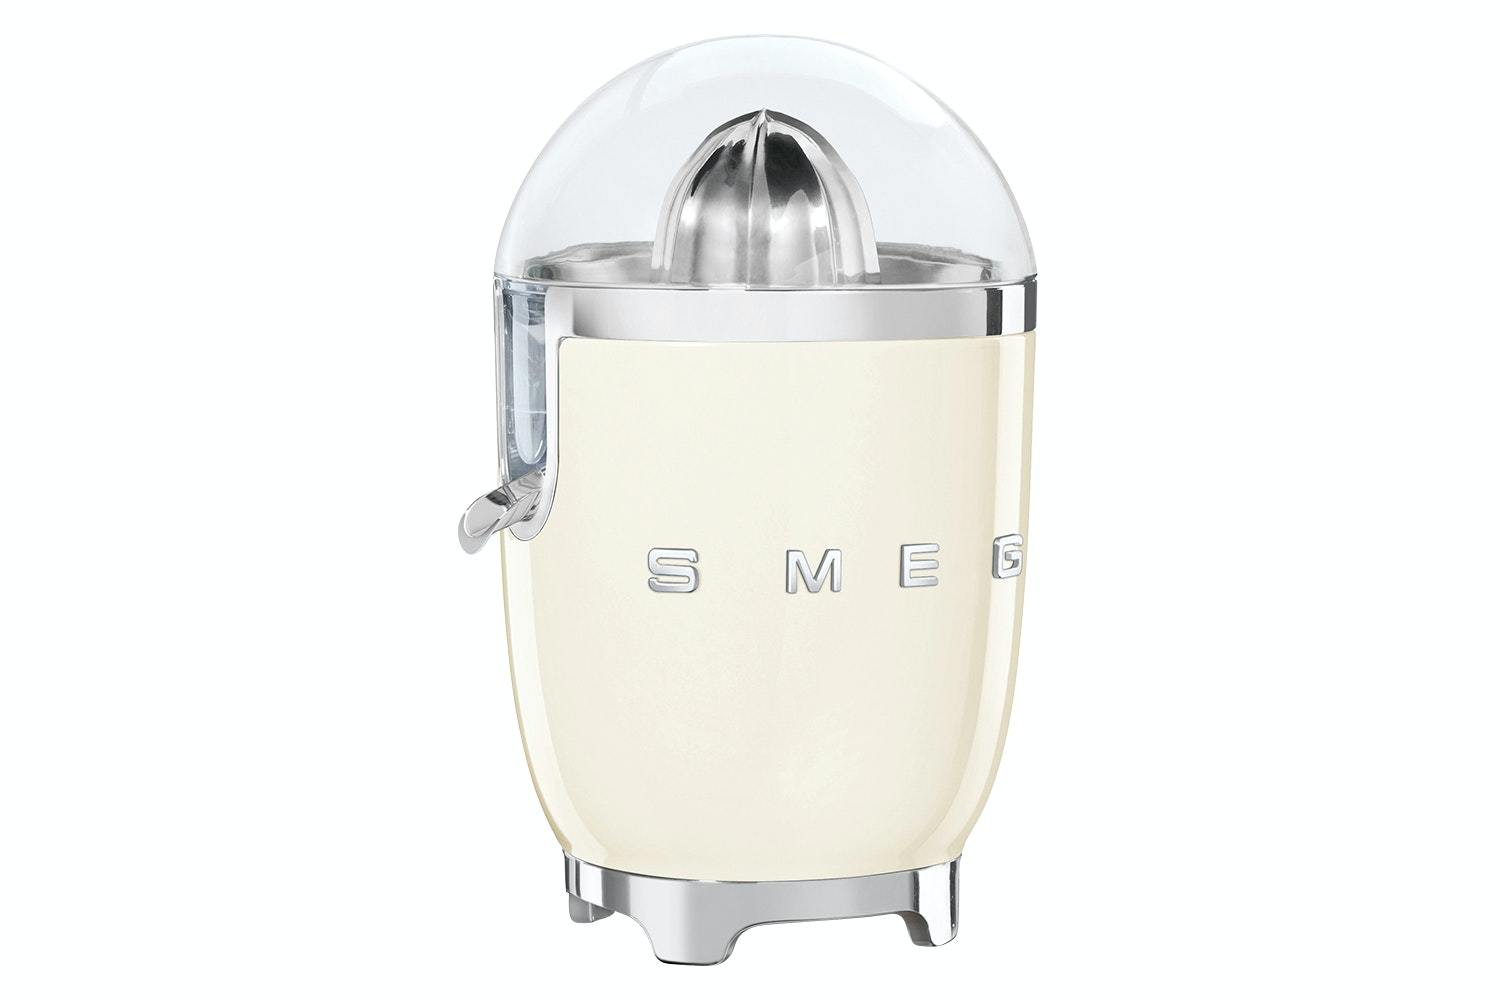 Smeg Retro Citrus Juicer | Cream